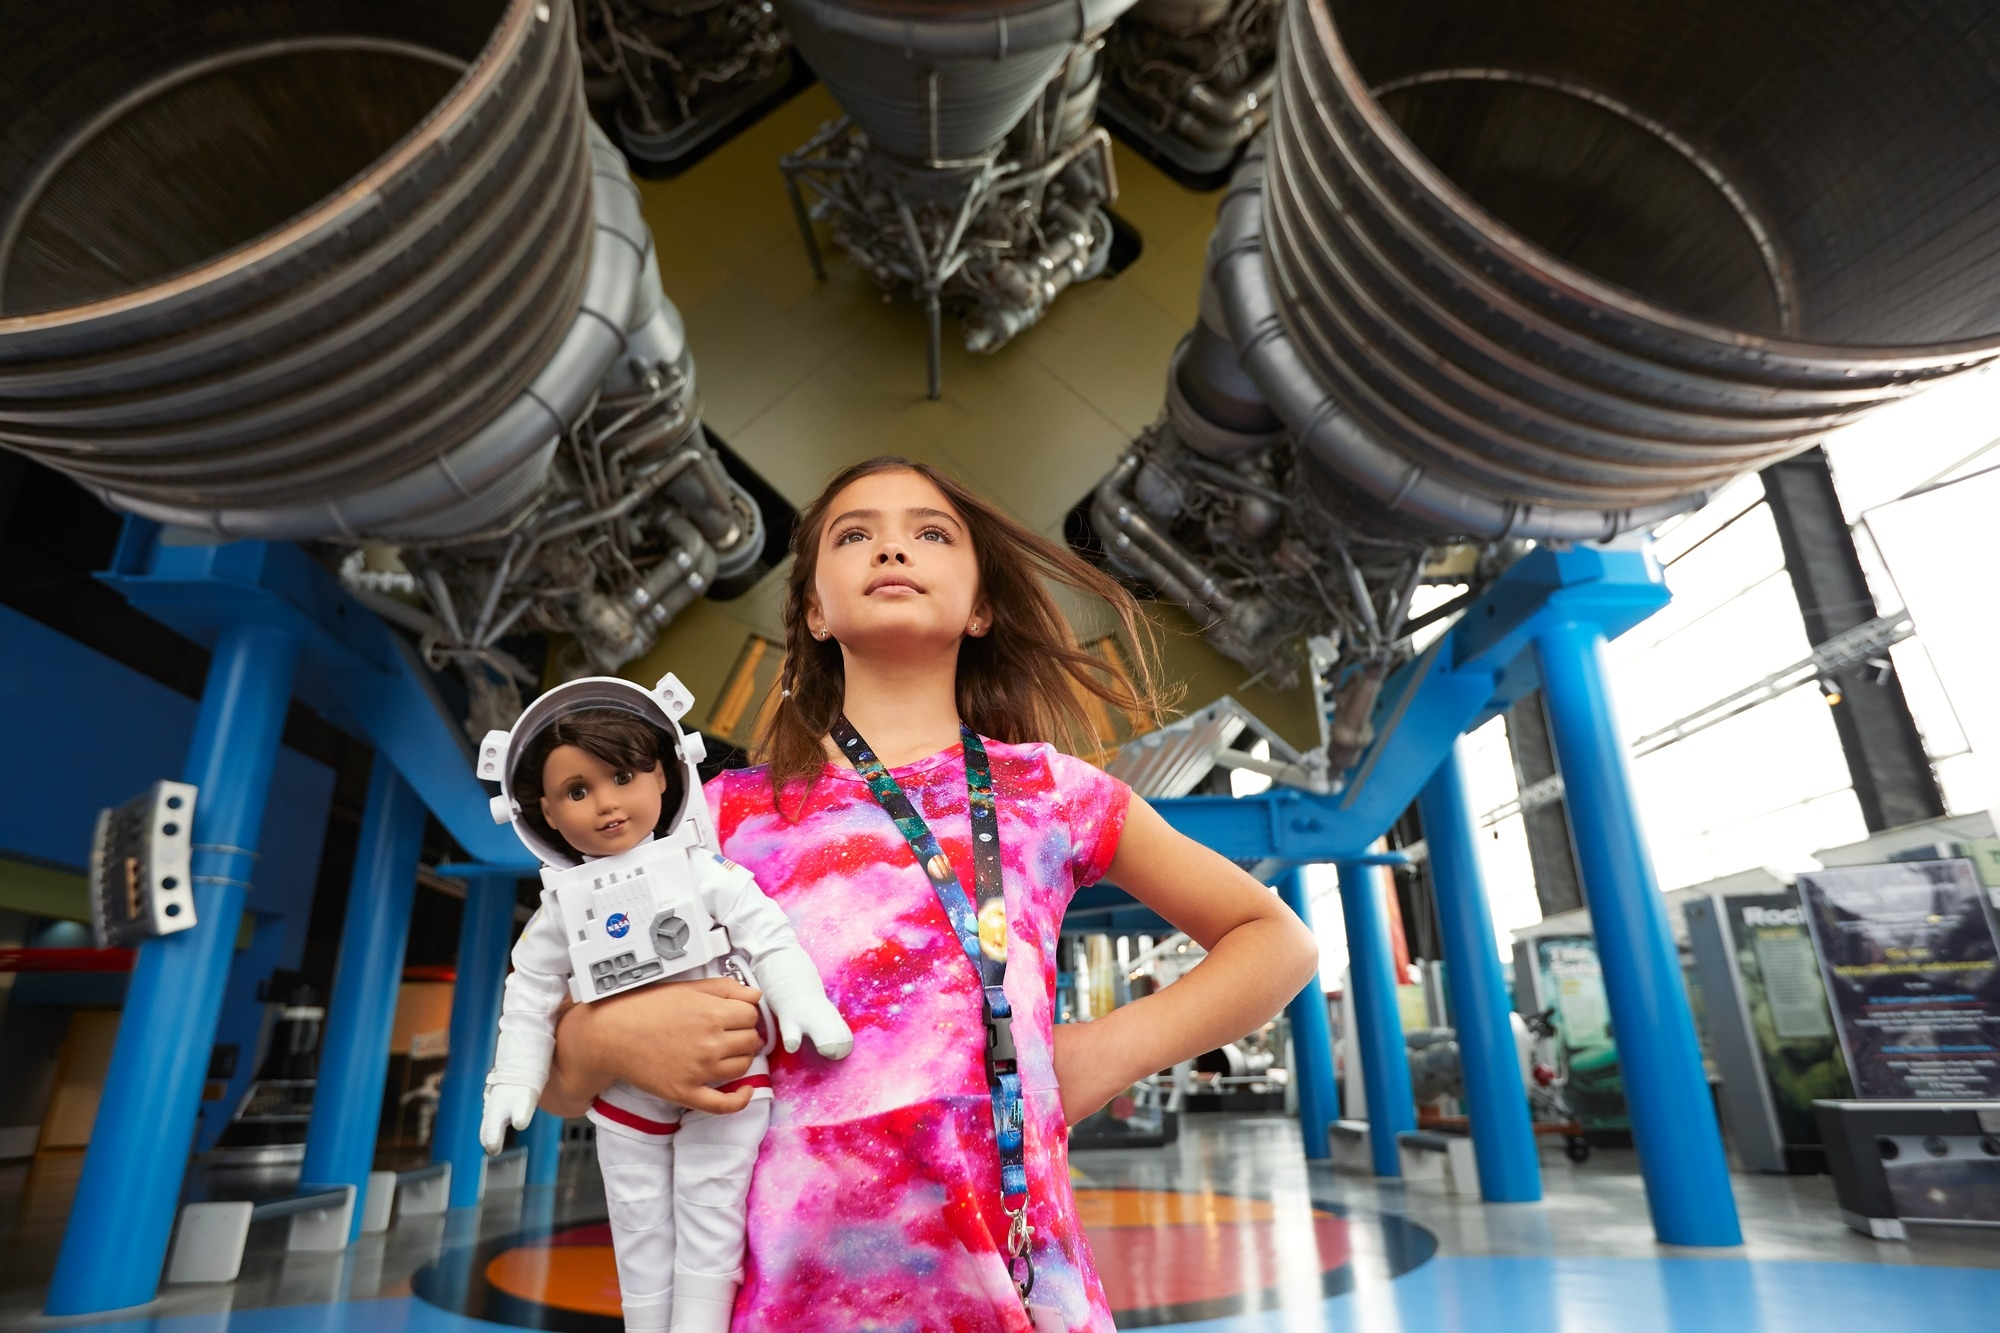 NASA lends a hand to new American Girl doll with Mars aspirations. The company partnered with the space agency to inspire kids to pursue STEM-related fields.